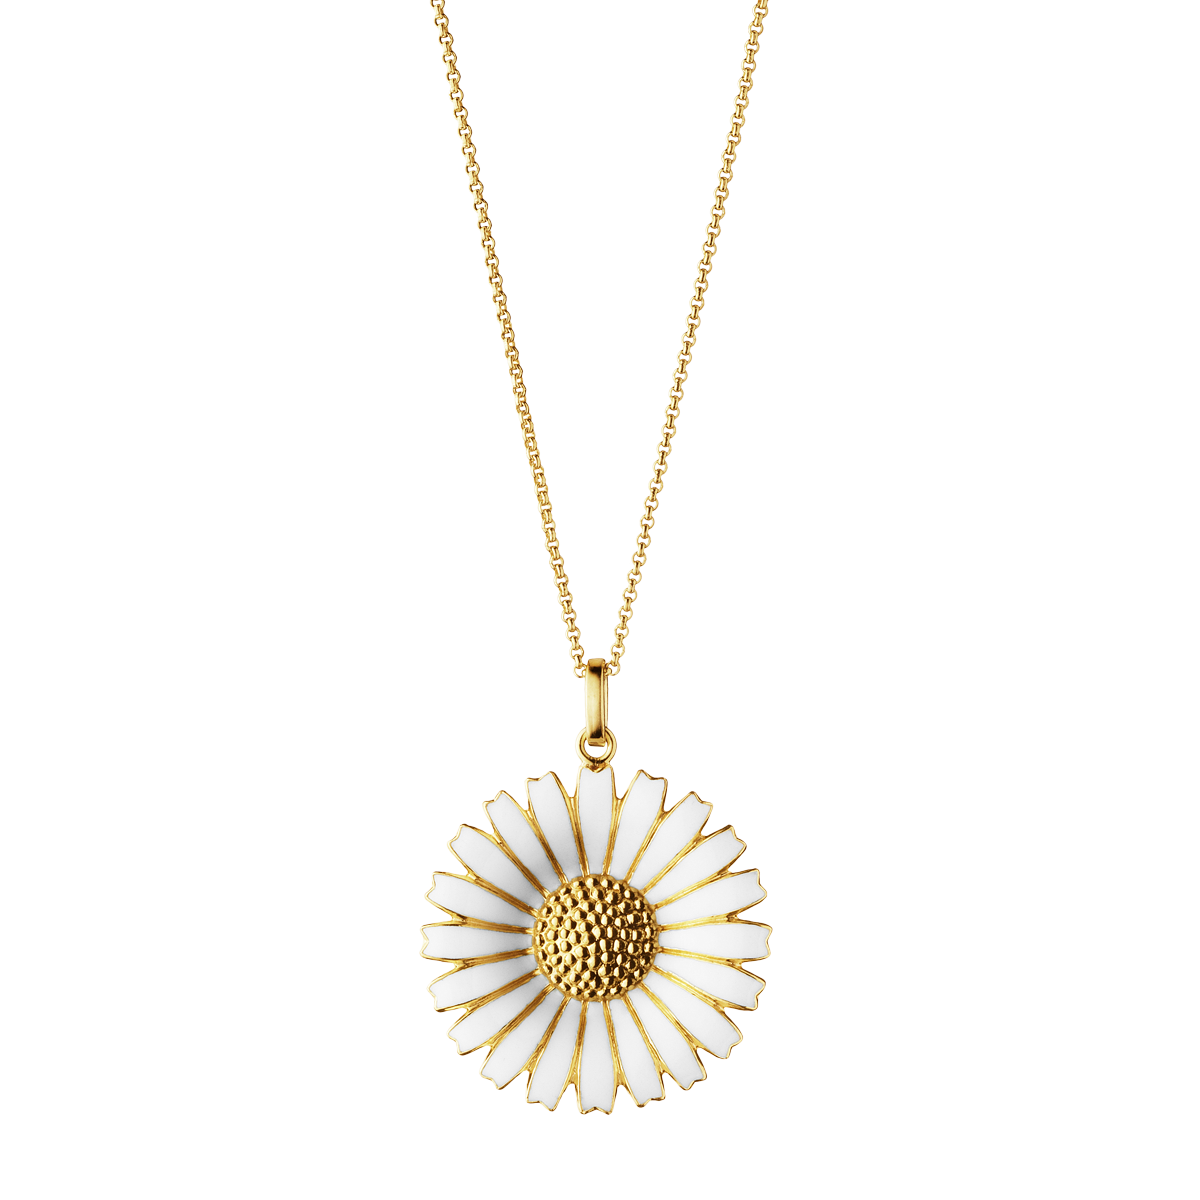 Daisy Pendant Gold Plated Sterling Silver With White